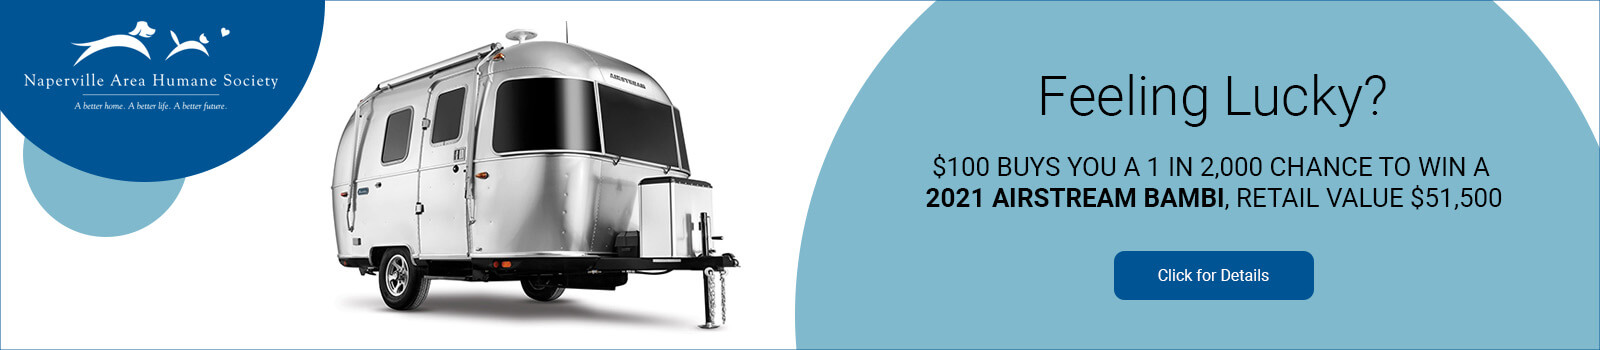 $100 BUYS YOU A 1 IN 2,000 CHANCE TO WIN A 2021 AIRSTREAM BAMBI, RETAIL VALUE $51,500 - click for details